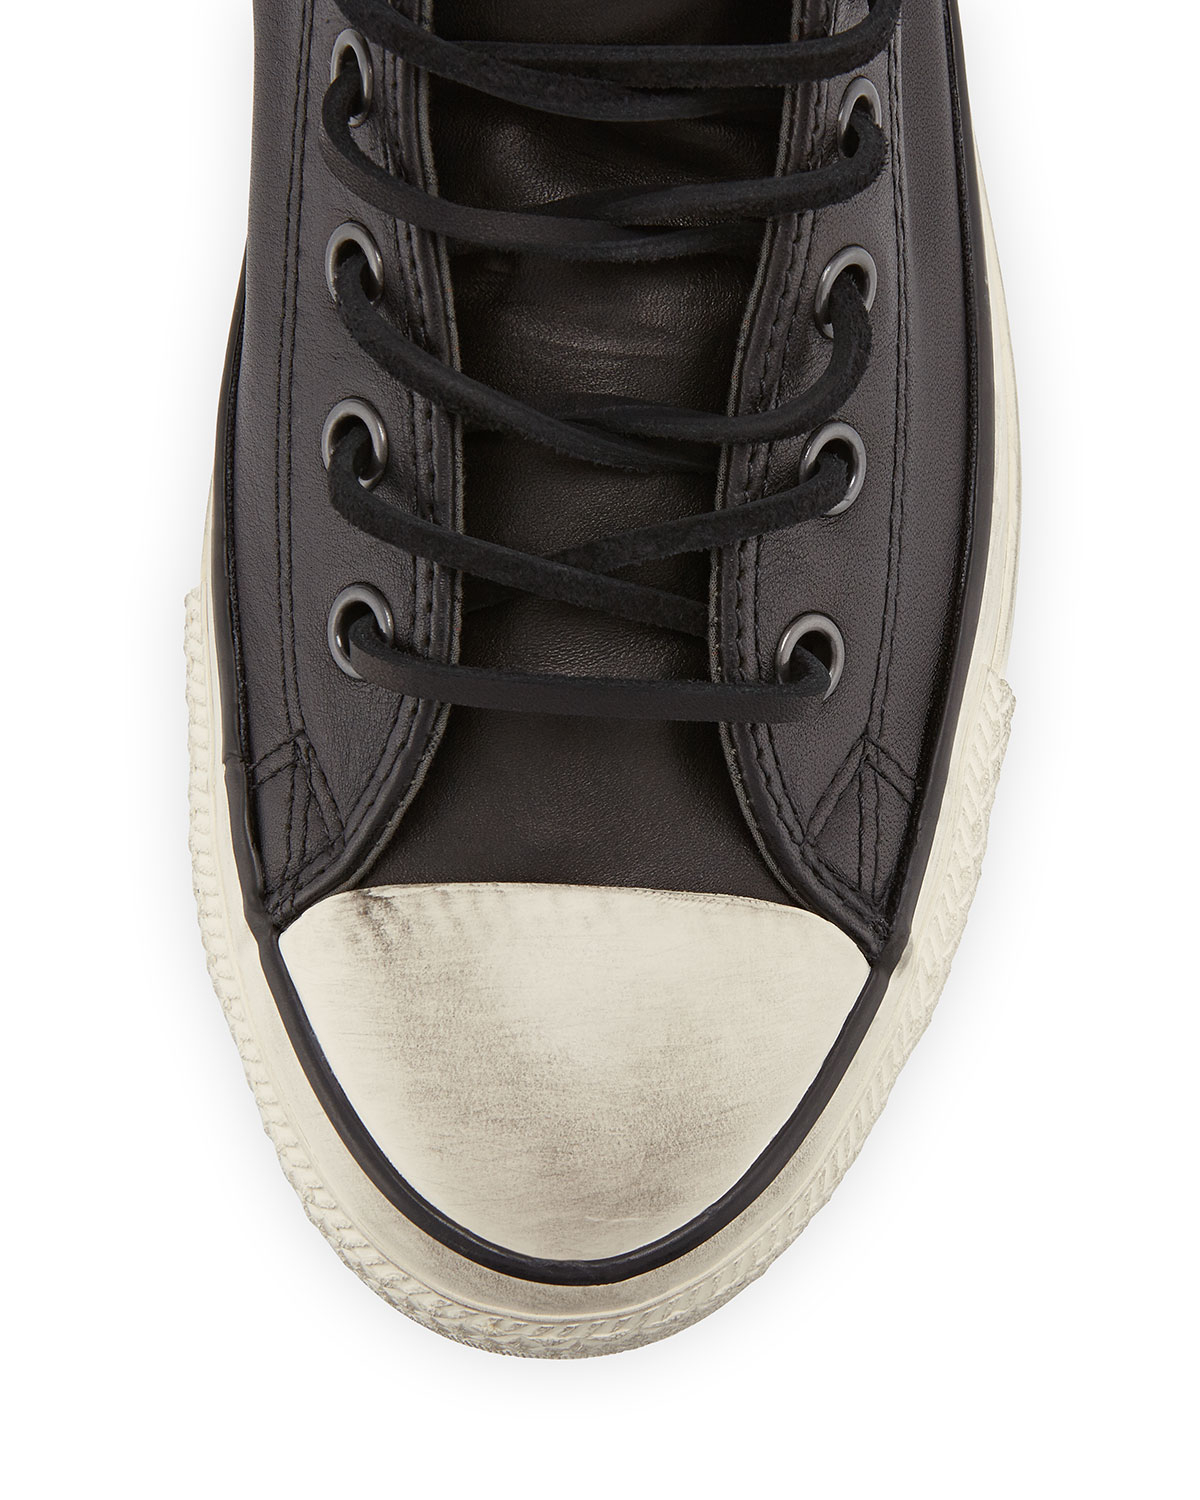 72862beed44e Lyst - Converse John Varvatos Studded Leather High-top Sneaker in Black